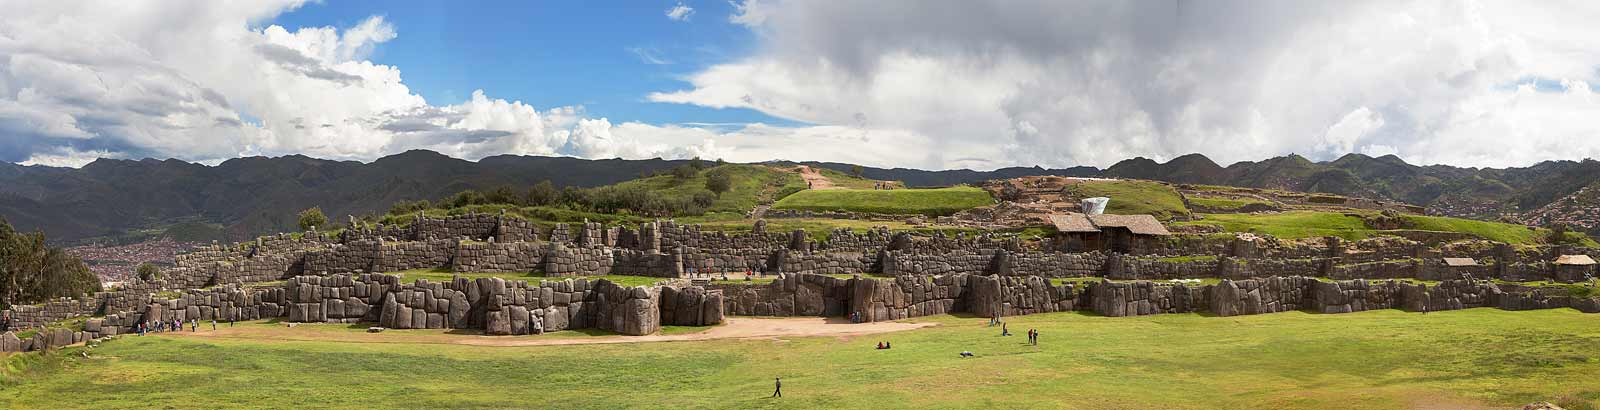 Humans appear tiny next to the giant stone ruins of Sacsayhuaman